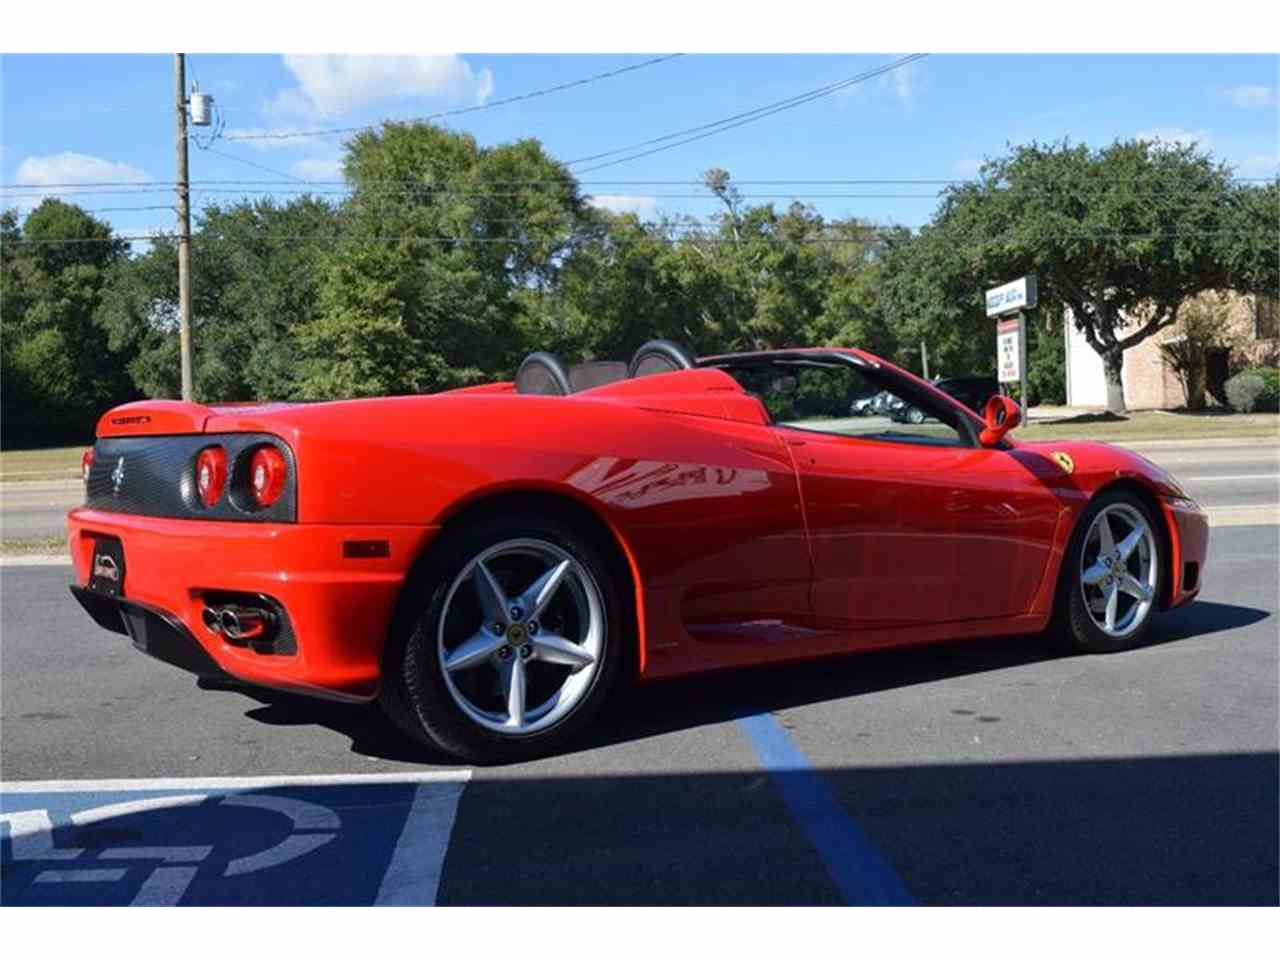 Large Picture of '04 Ferrari 360 located in Biloxi Mississippi - $84,900.00 Offered by Gulf Coast Exotic Auto - KCL8